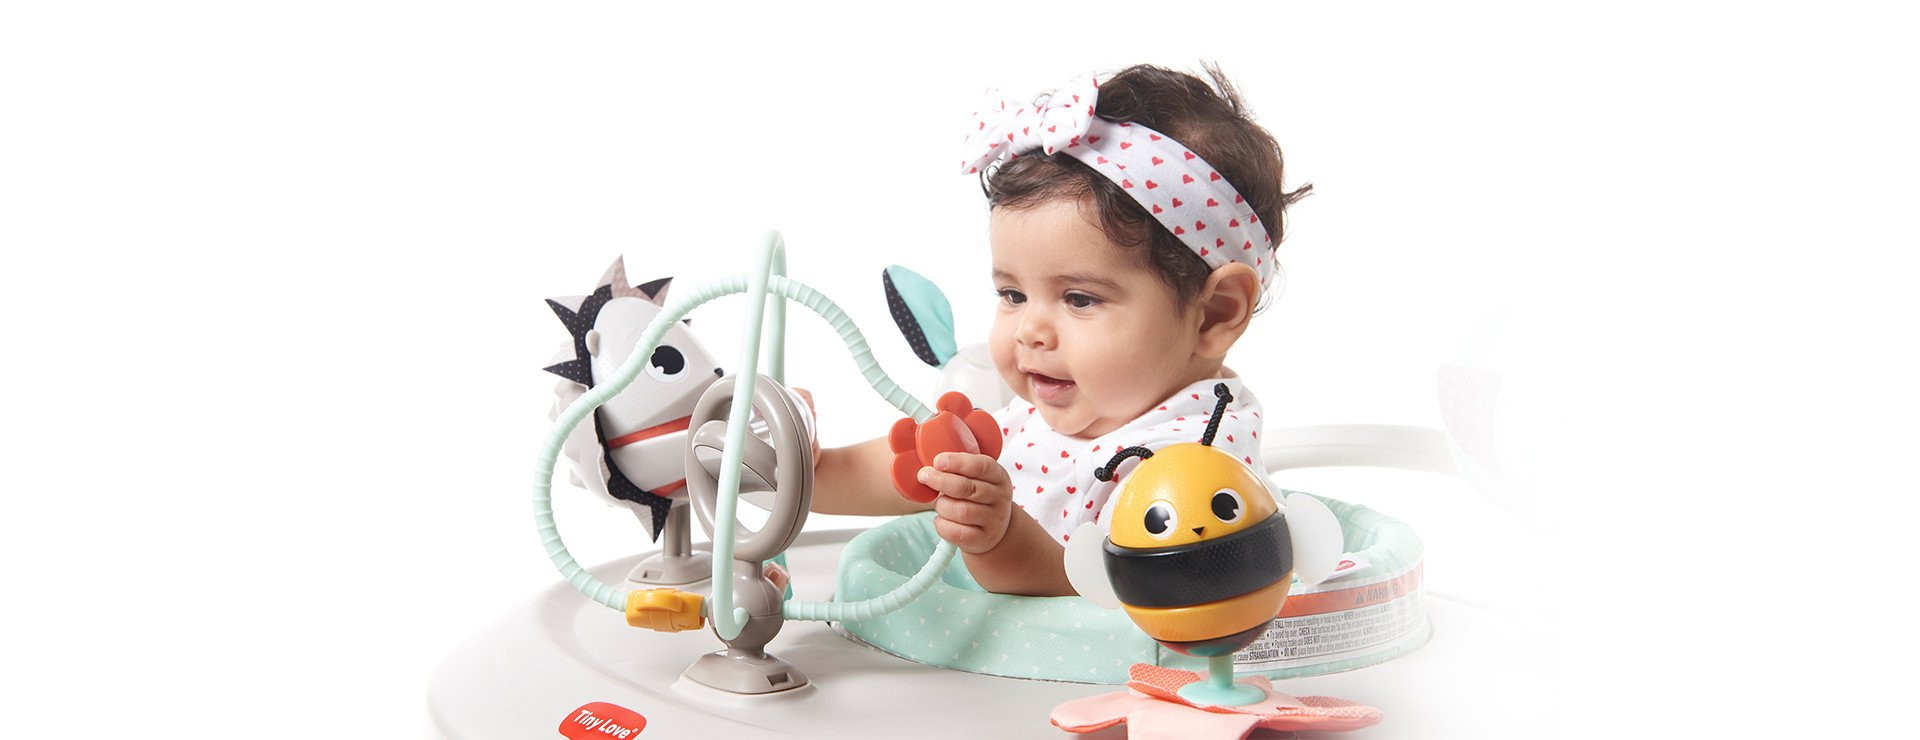 A vareity of toys to stimulate baby's fine and gross motor skill development